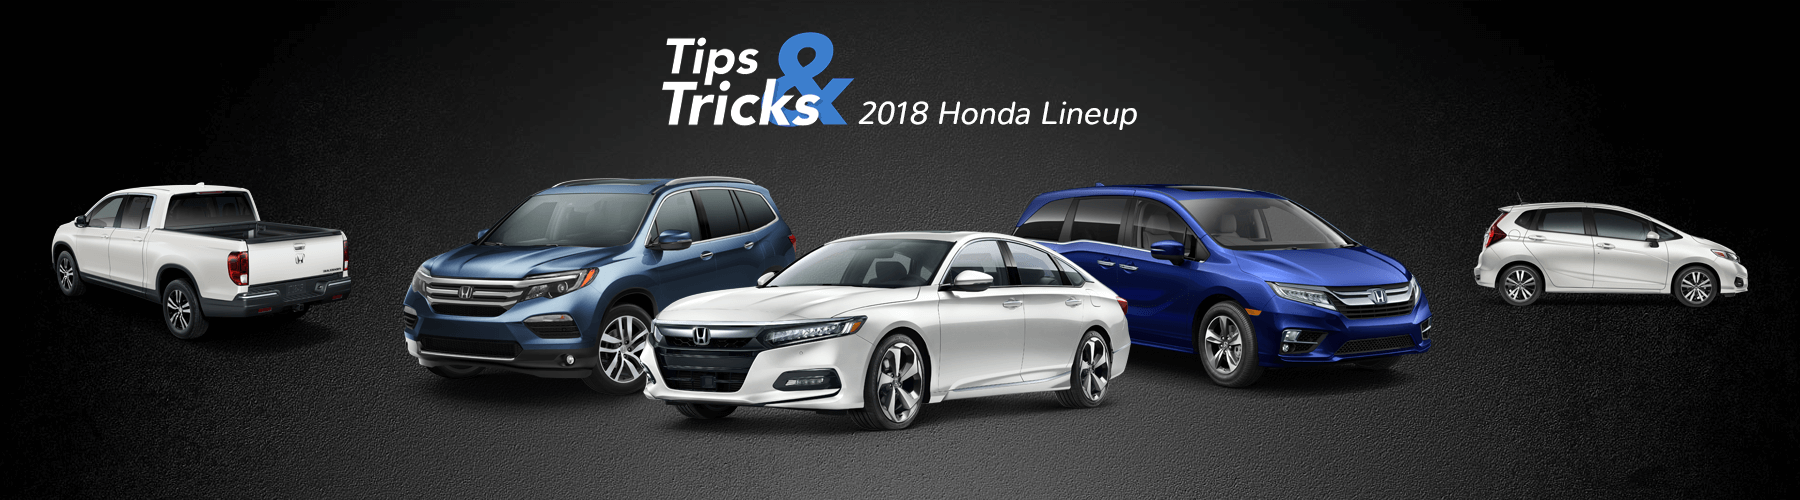 2018 Honda Tips and Tricks Banner